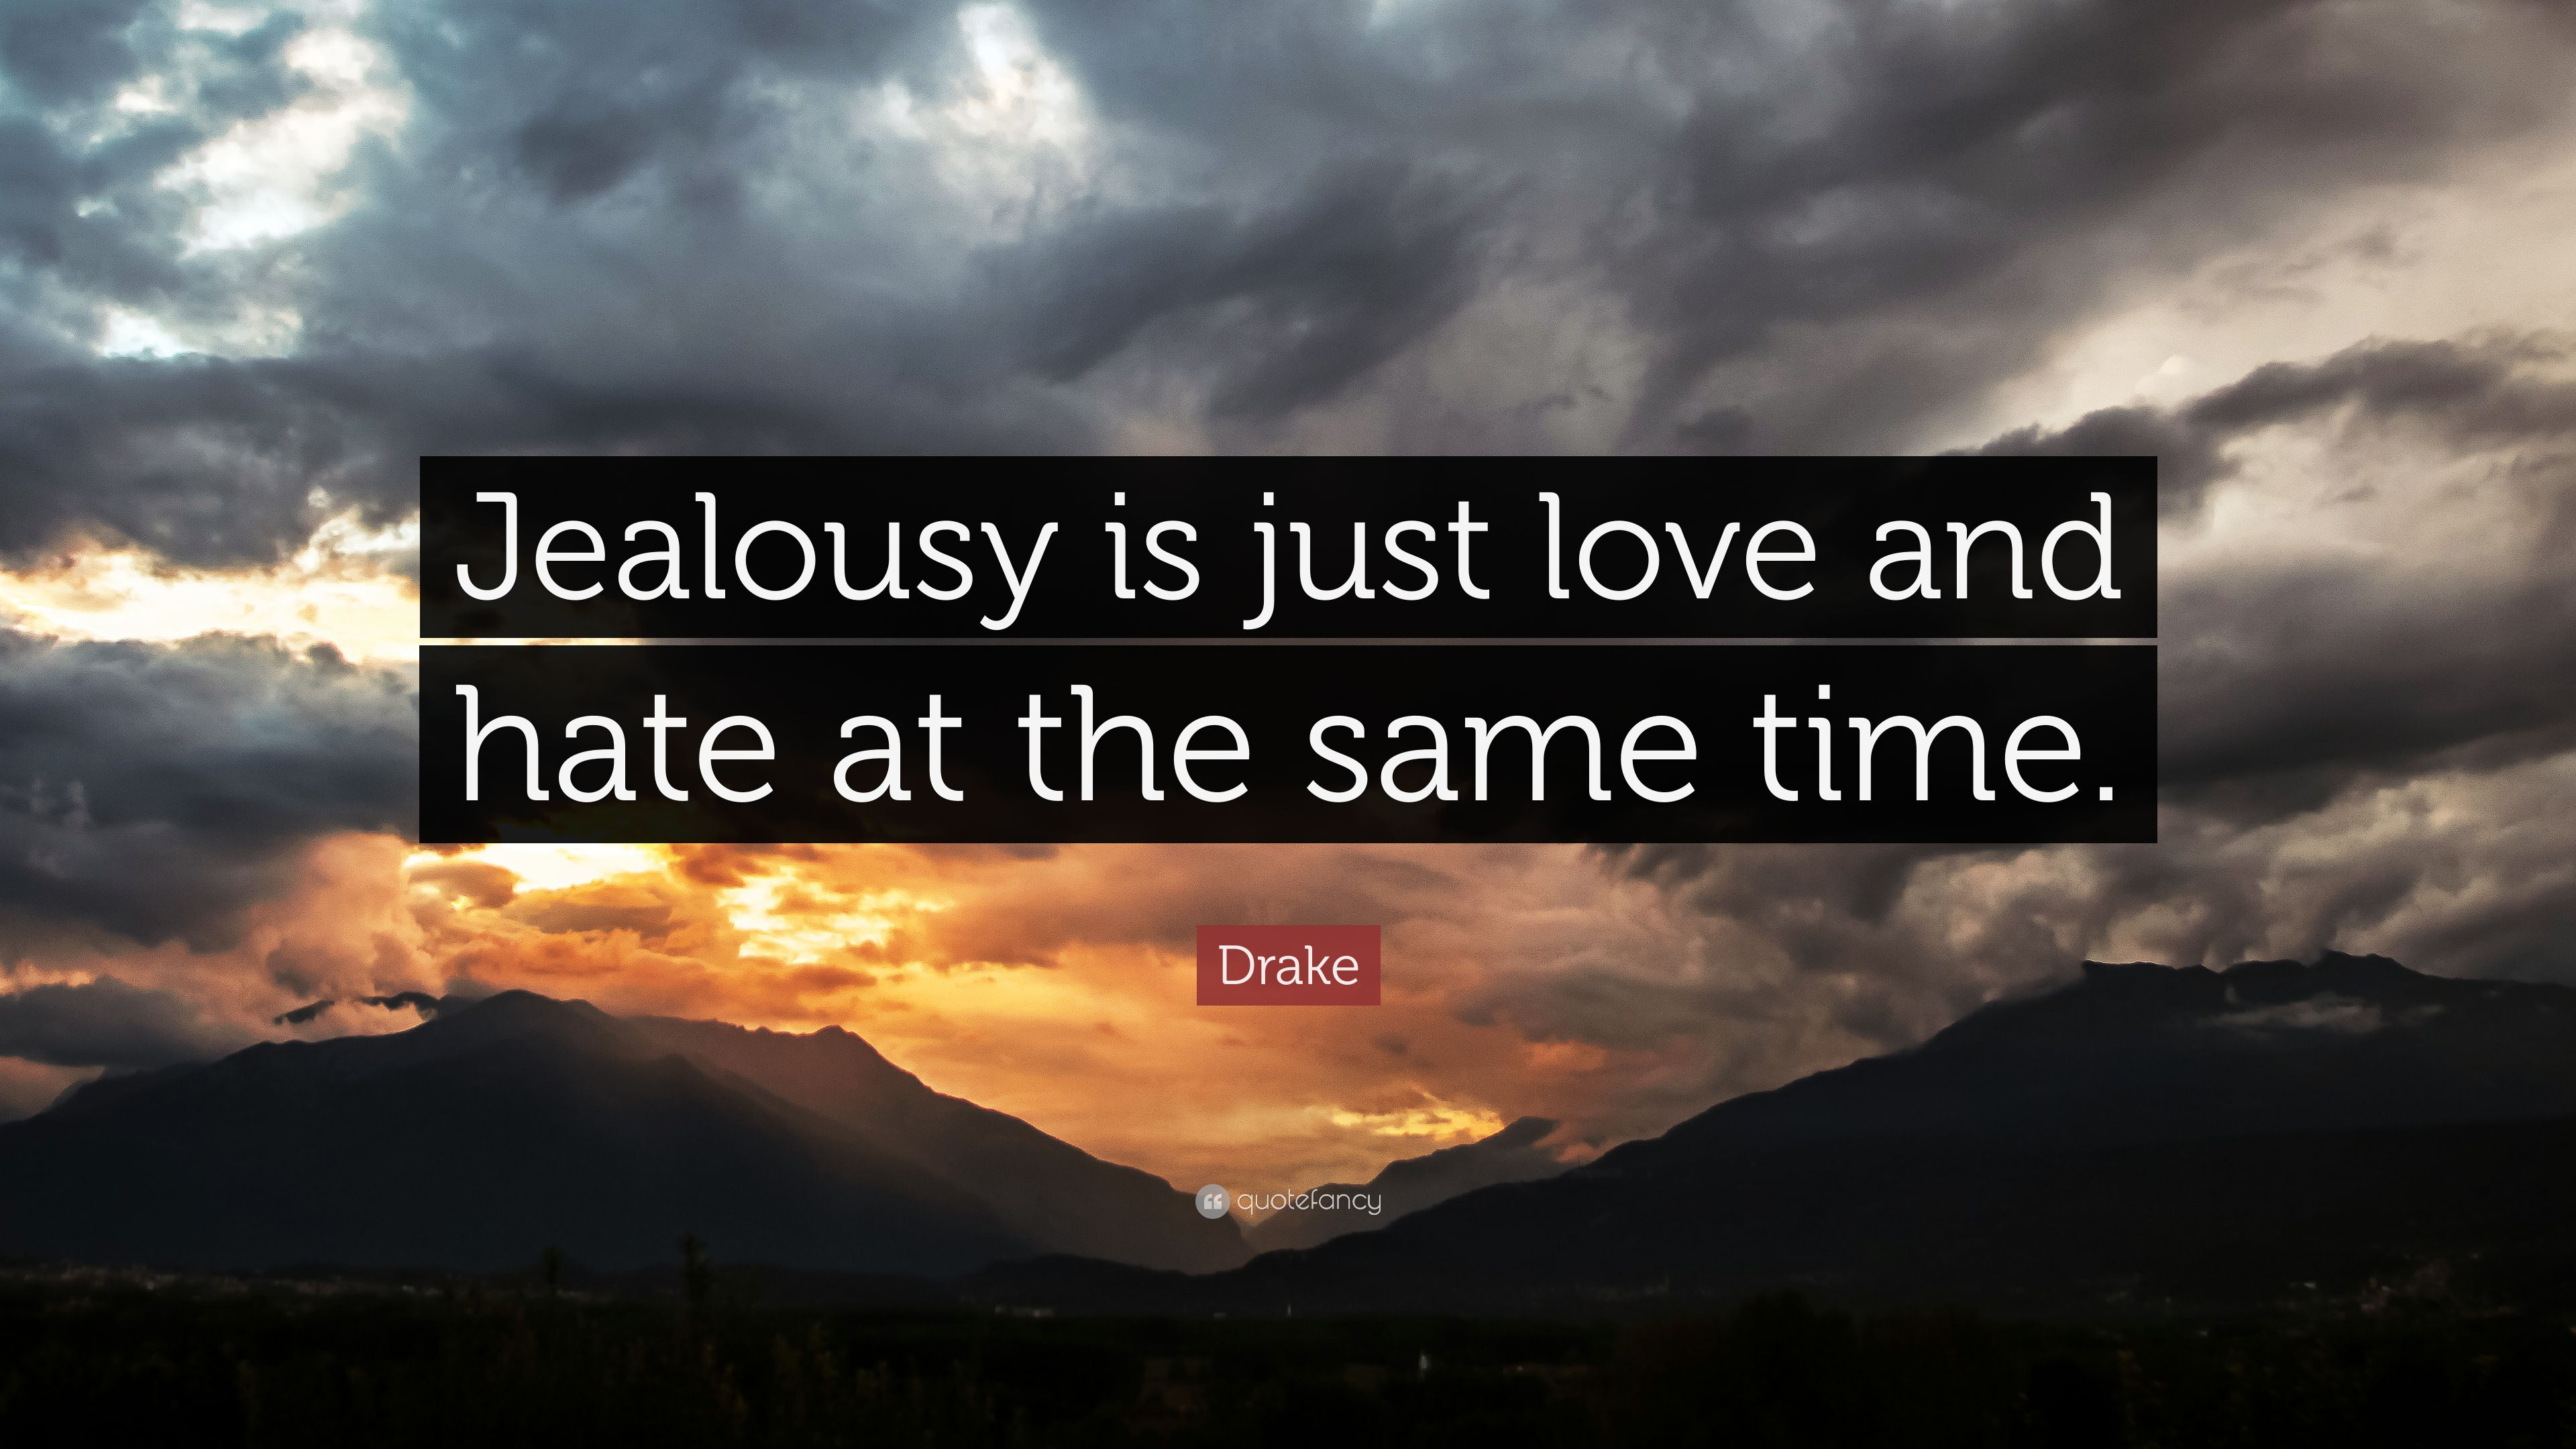 Love Jealousy Quotes Quotes About Love And Hate Being The Same  Avoid Avoiding Hate